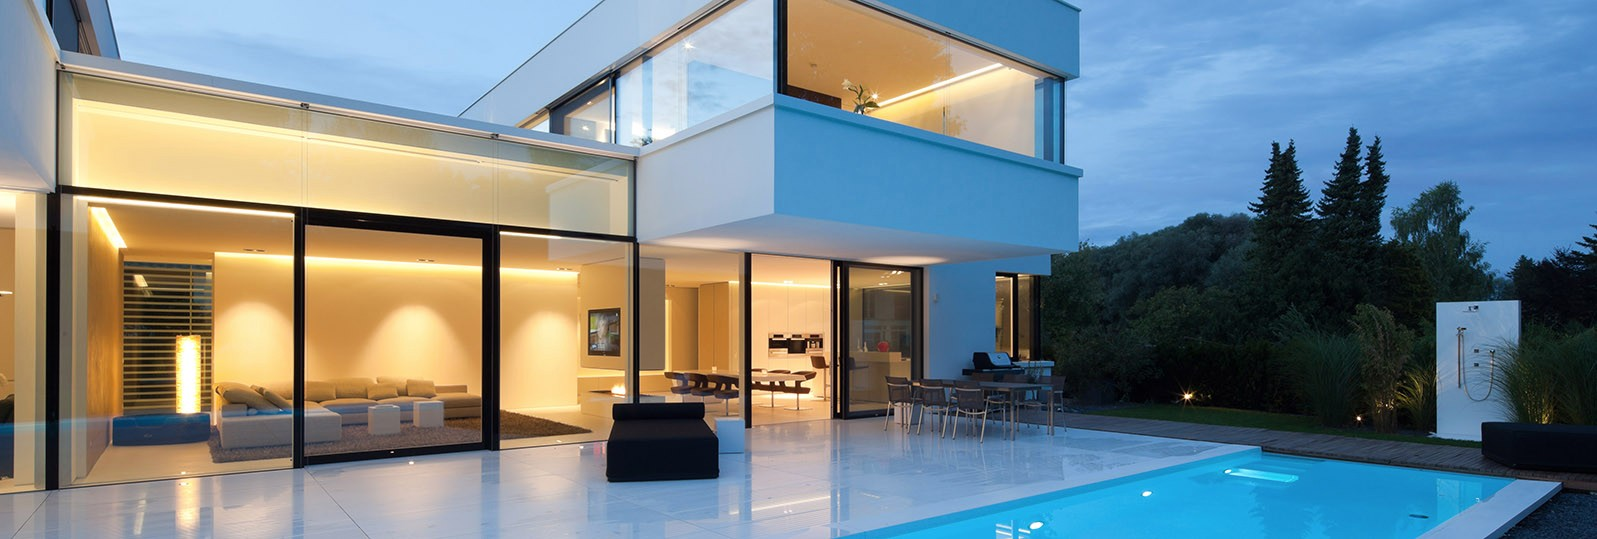 hi-macs house in germany white exterior cladding